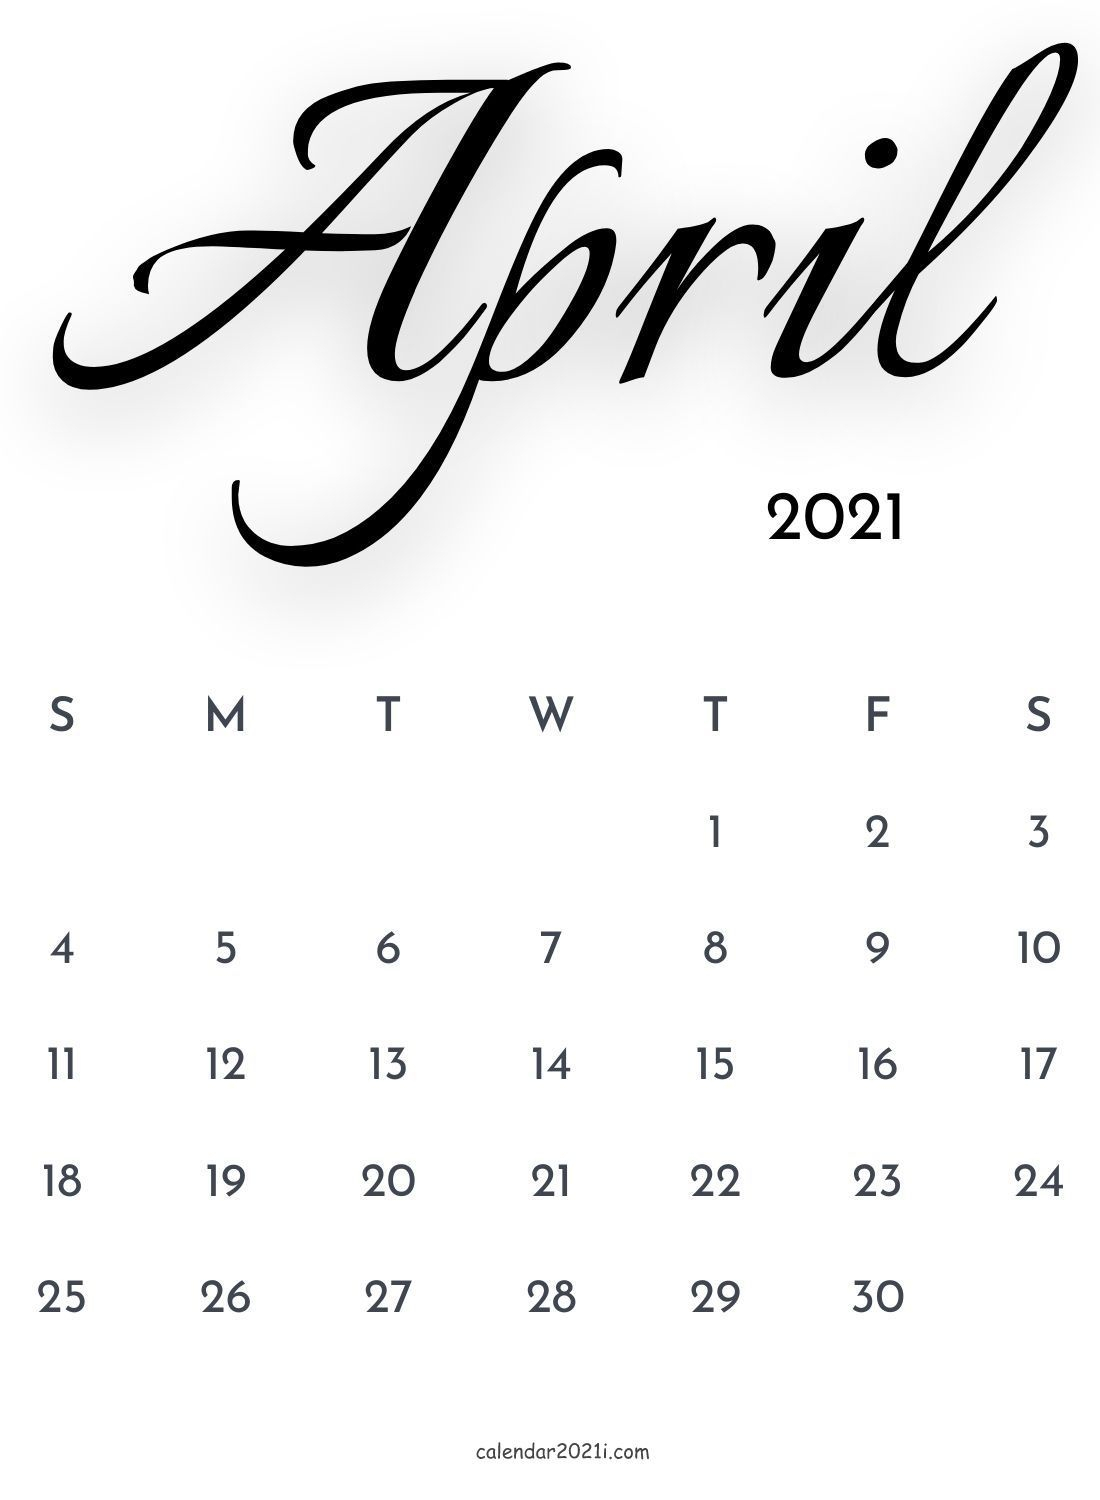 April 2021 Calligraphy Calendar Free Download In 2020 | Free